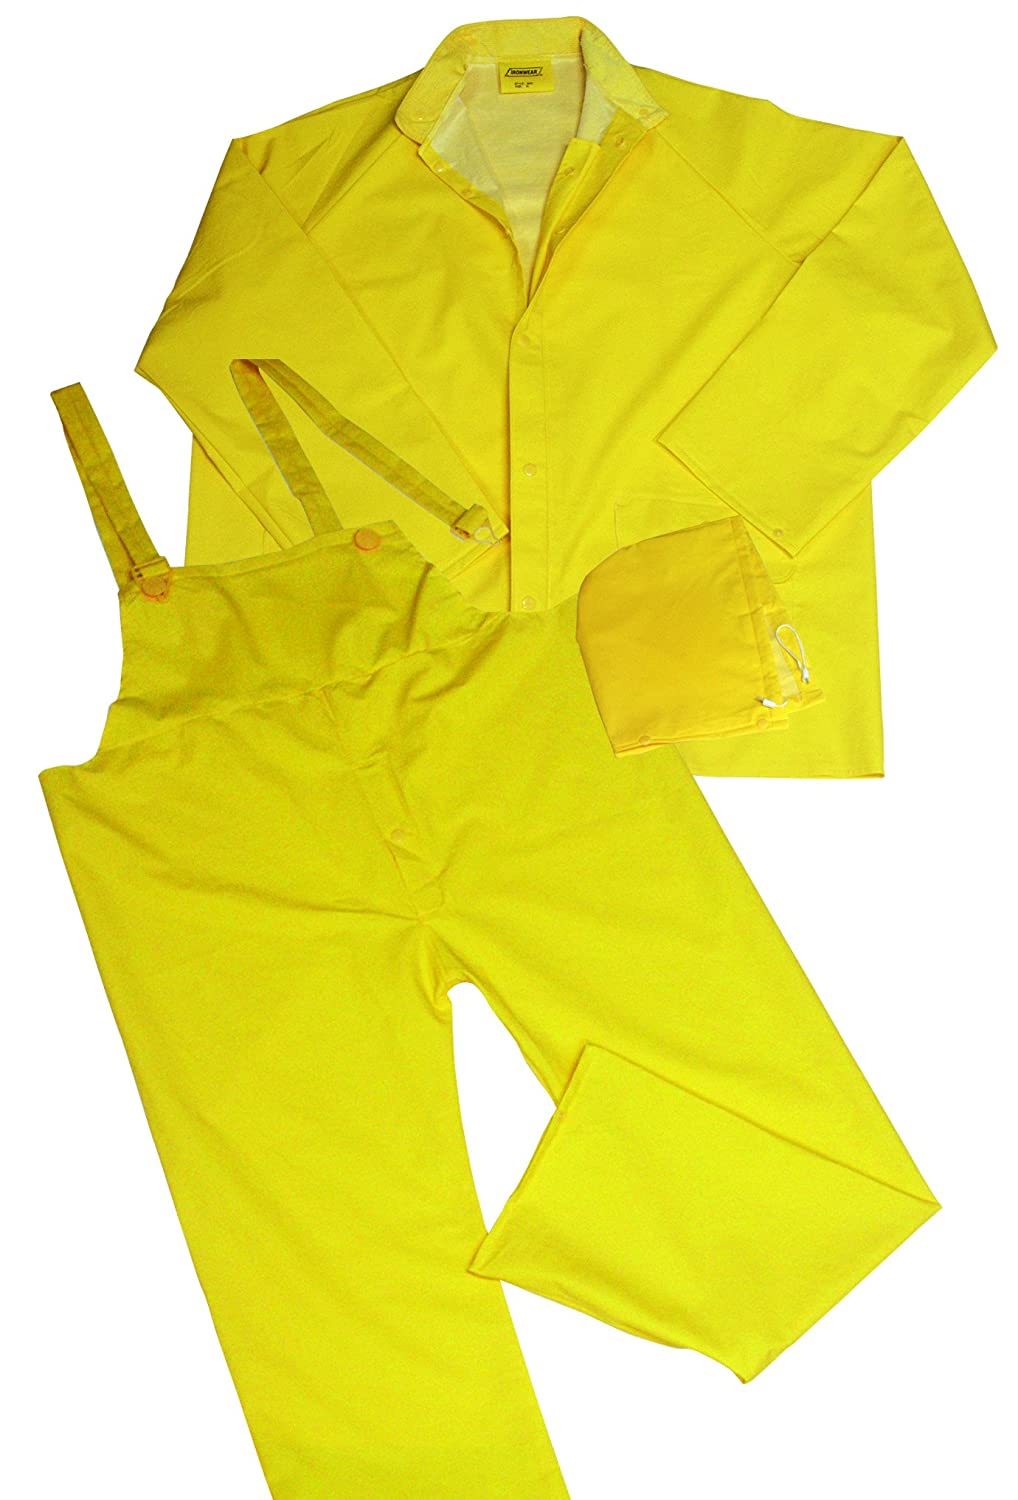 Ironwear 9200-Y .35mm PVC/Polyester fabric Rain Suit 5XL 9200-Y-5XL